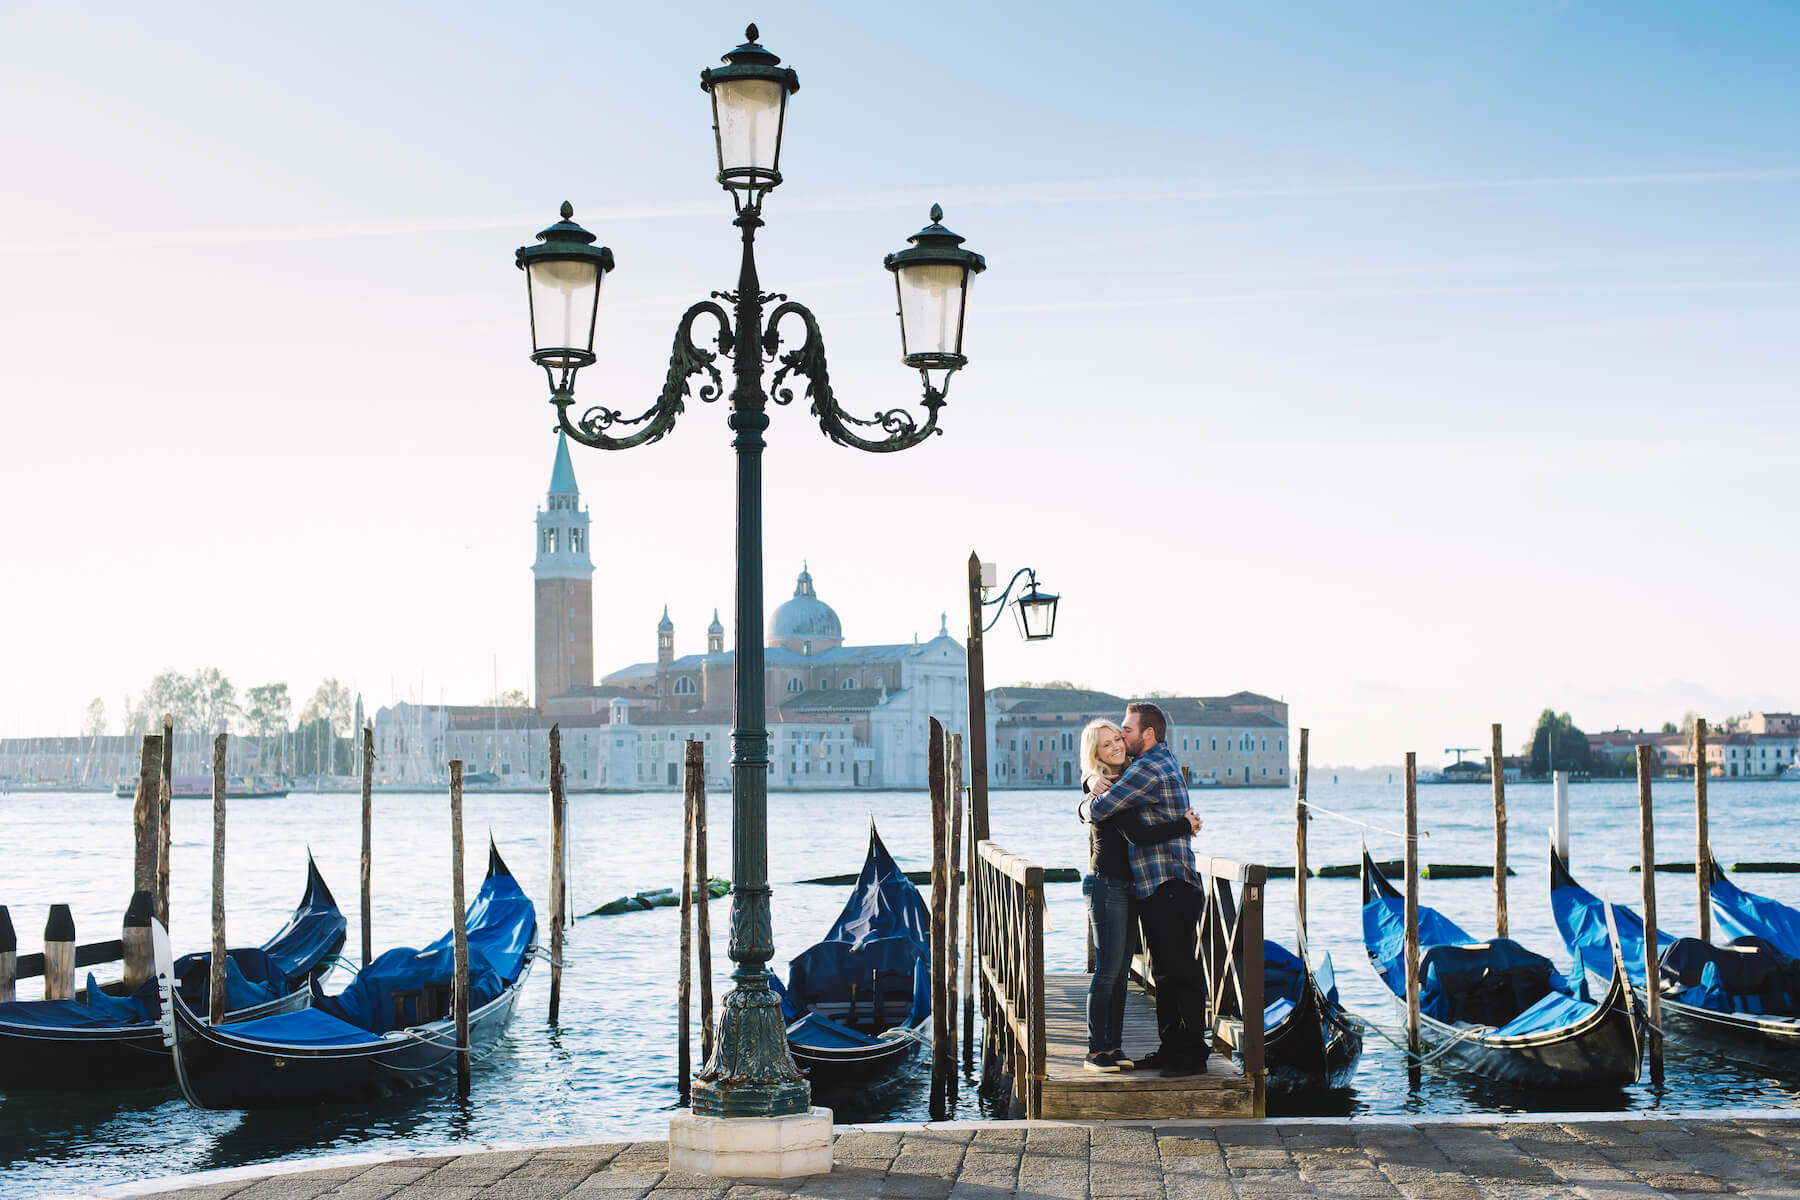 Couple in front of a gondola in Venice Italy